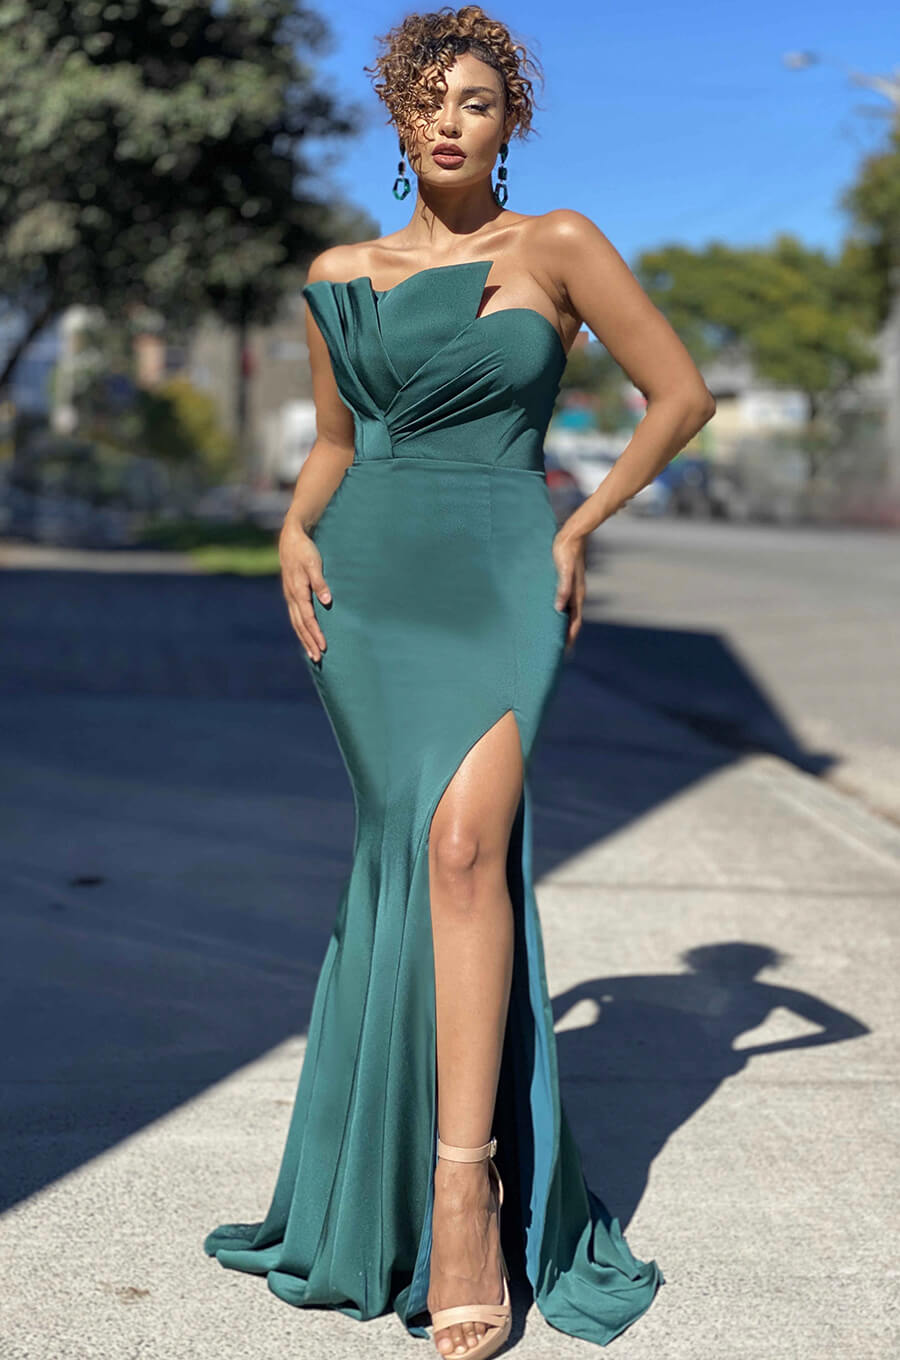 Strapless gown features a fold and pleated bust with mermaid style skirt and side split